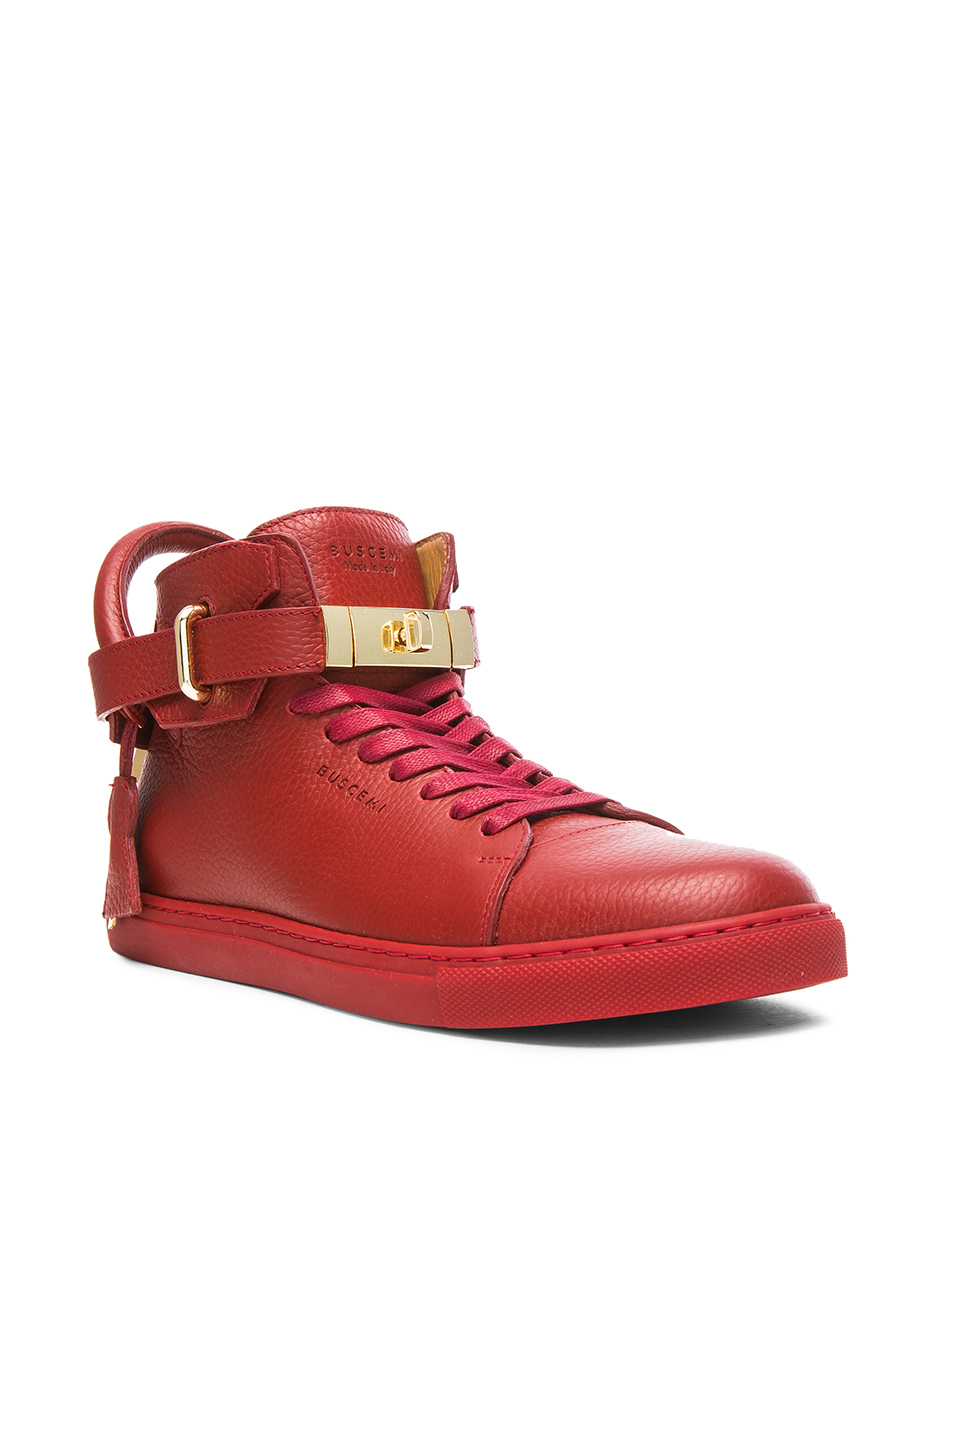 Buscemi 100 MM High Top Leather Sneakers in Red